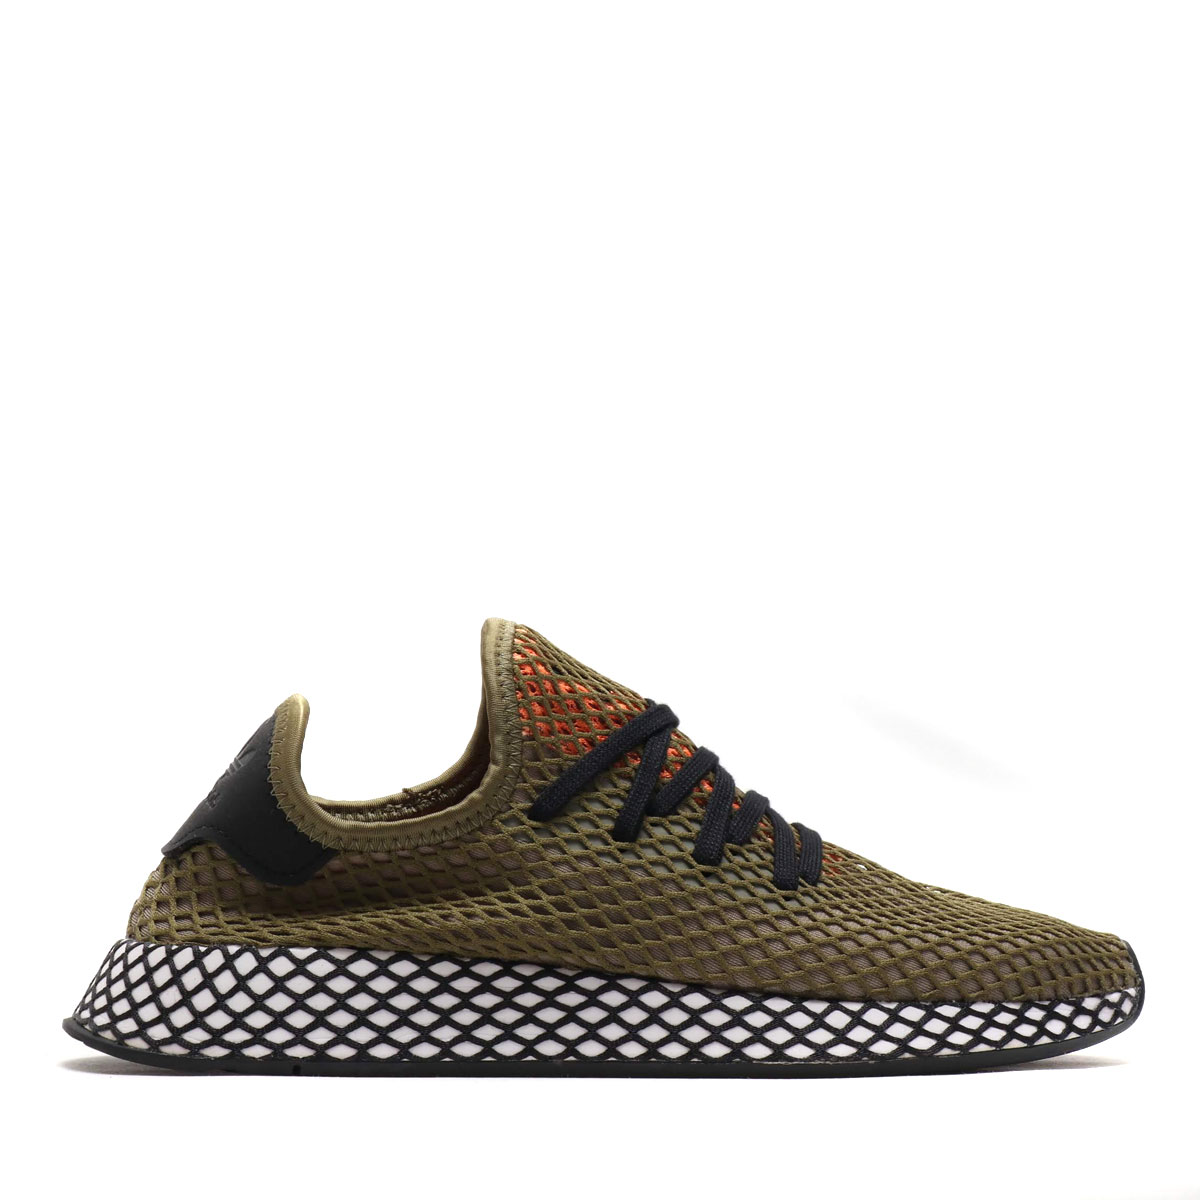 quality design 891cb 5a4d5 adidas Originals DEERUPT RUNNER (RAW KHAKICORE BLACKEASY ORANGE)  (アディダスオリジナルスディーラプトランナー)